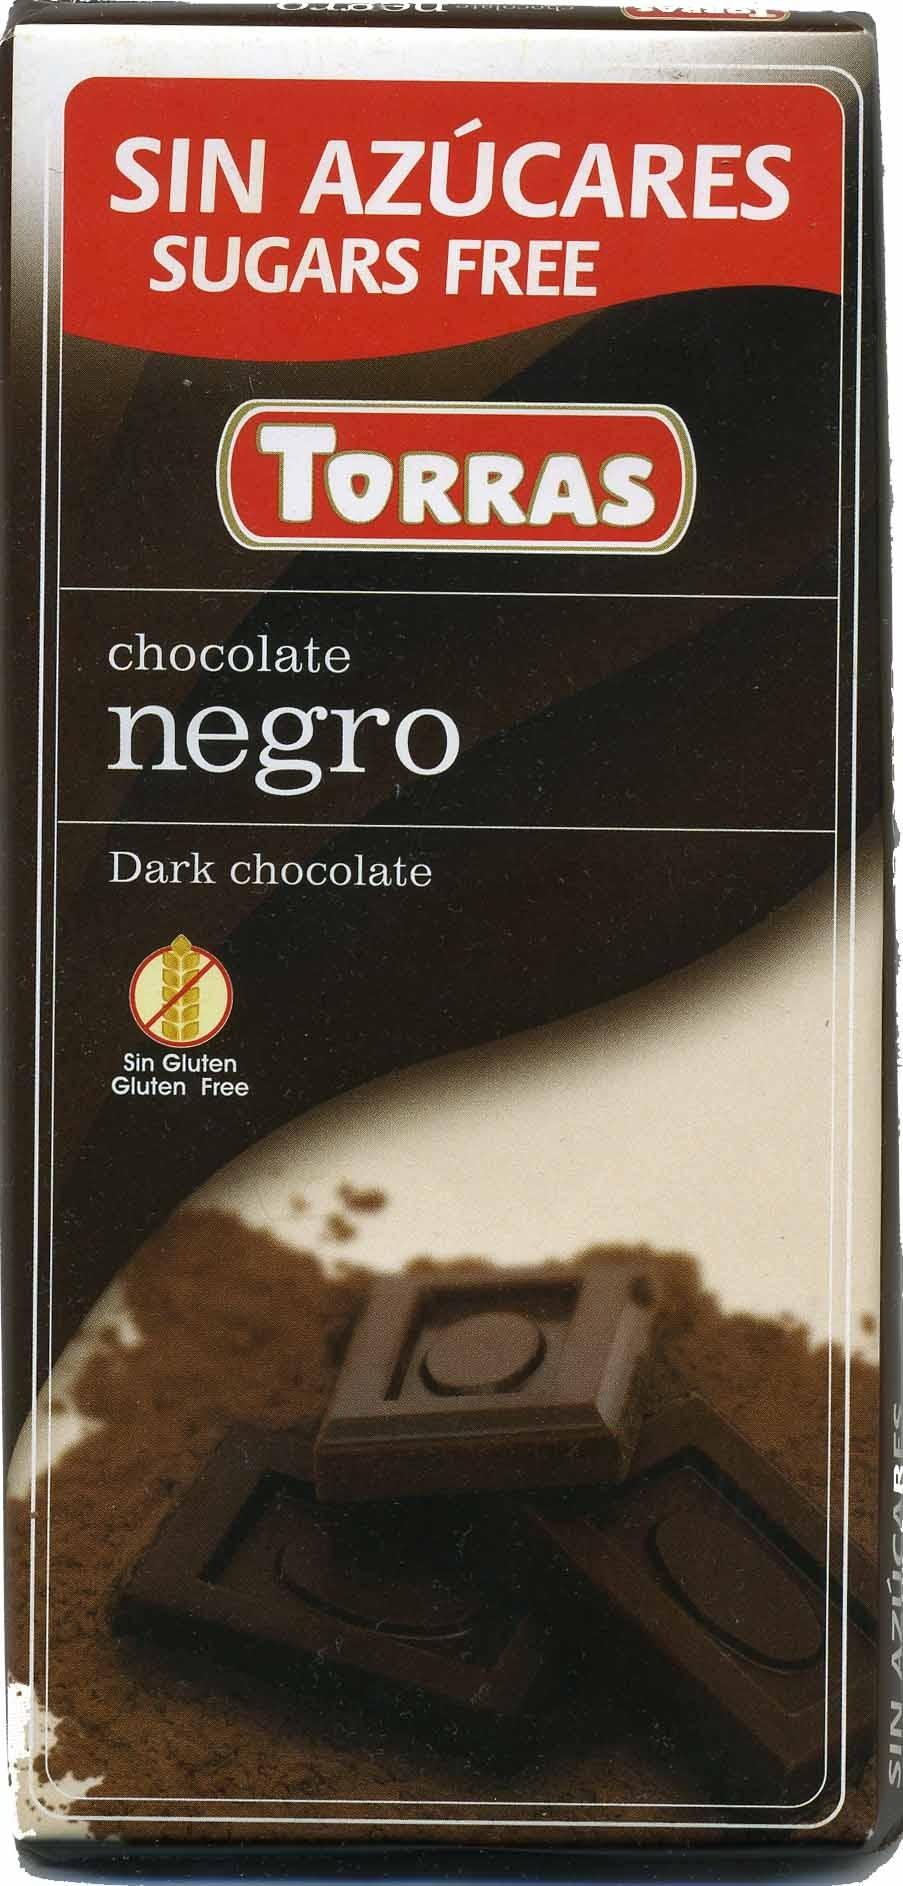 Tableta de chocolate negro edulcorado 52% cacao - Product - es